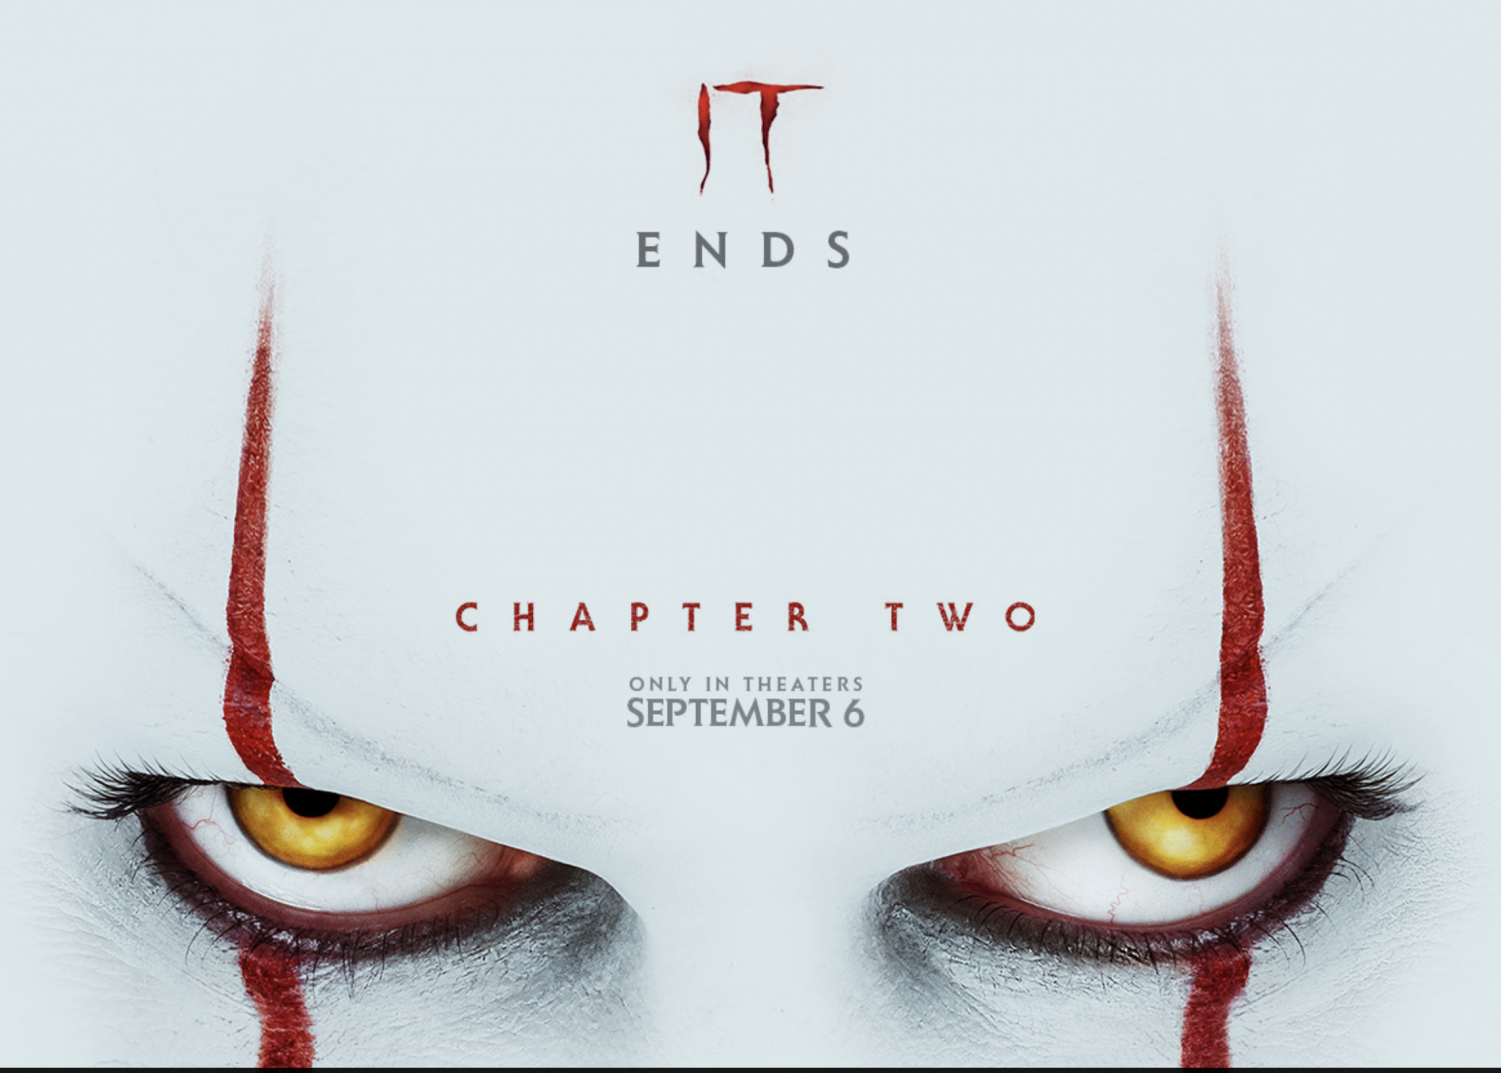 Photo of It: Chapter 2 from Warner Bros. official website.